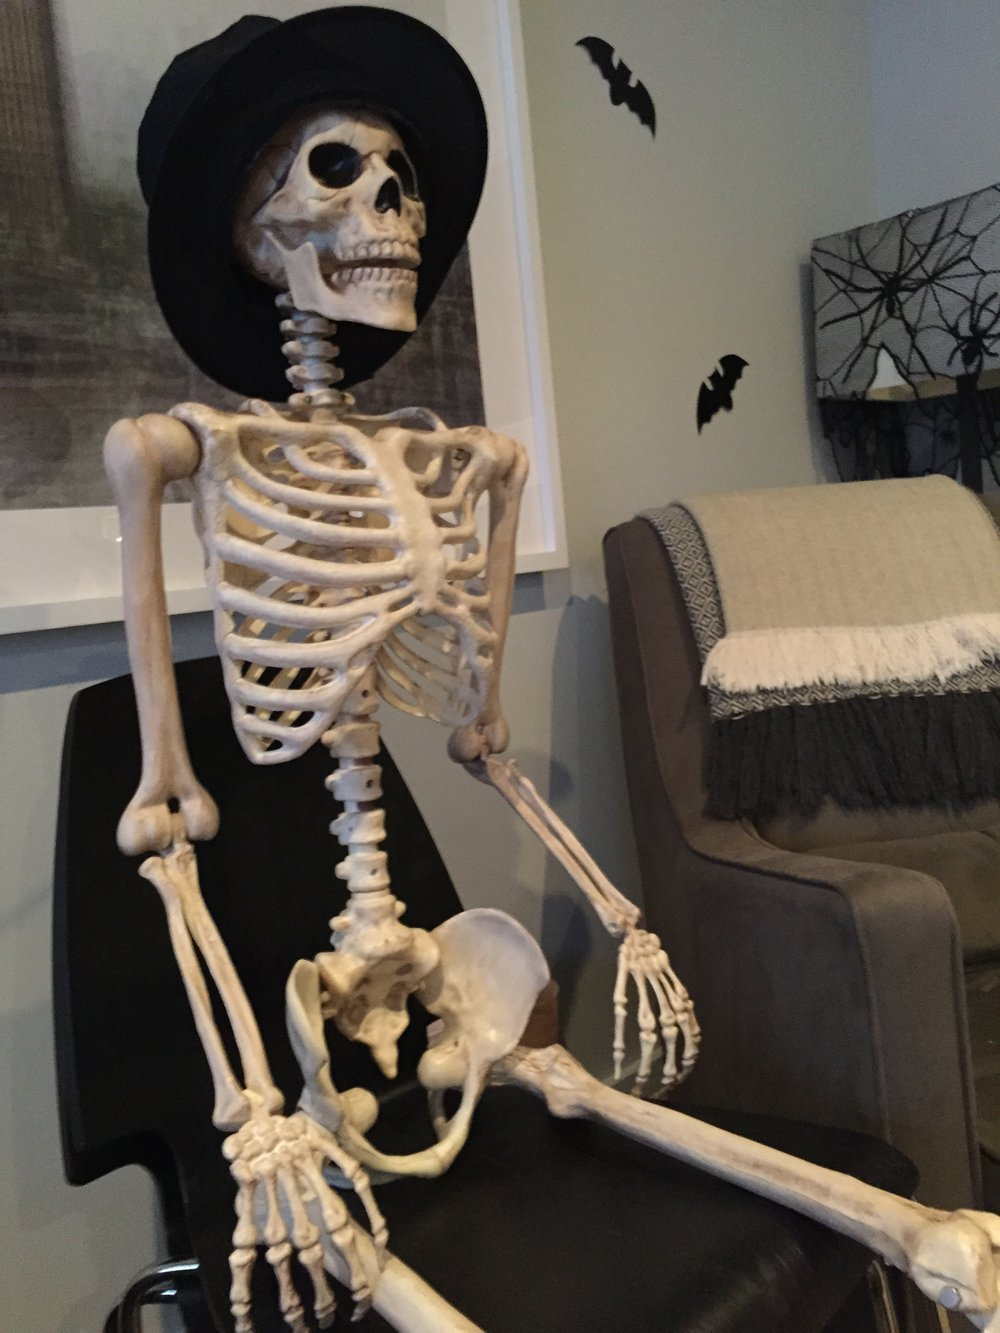 Mr Bones in our home, ready for the party